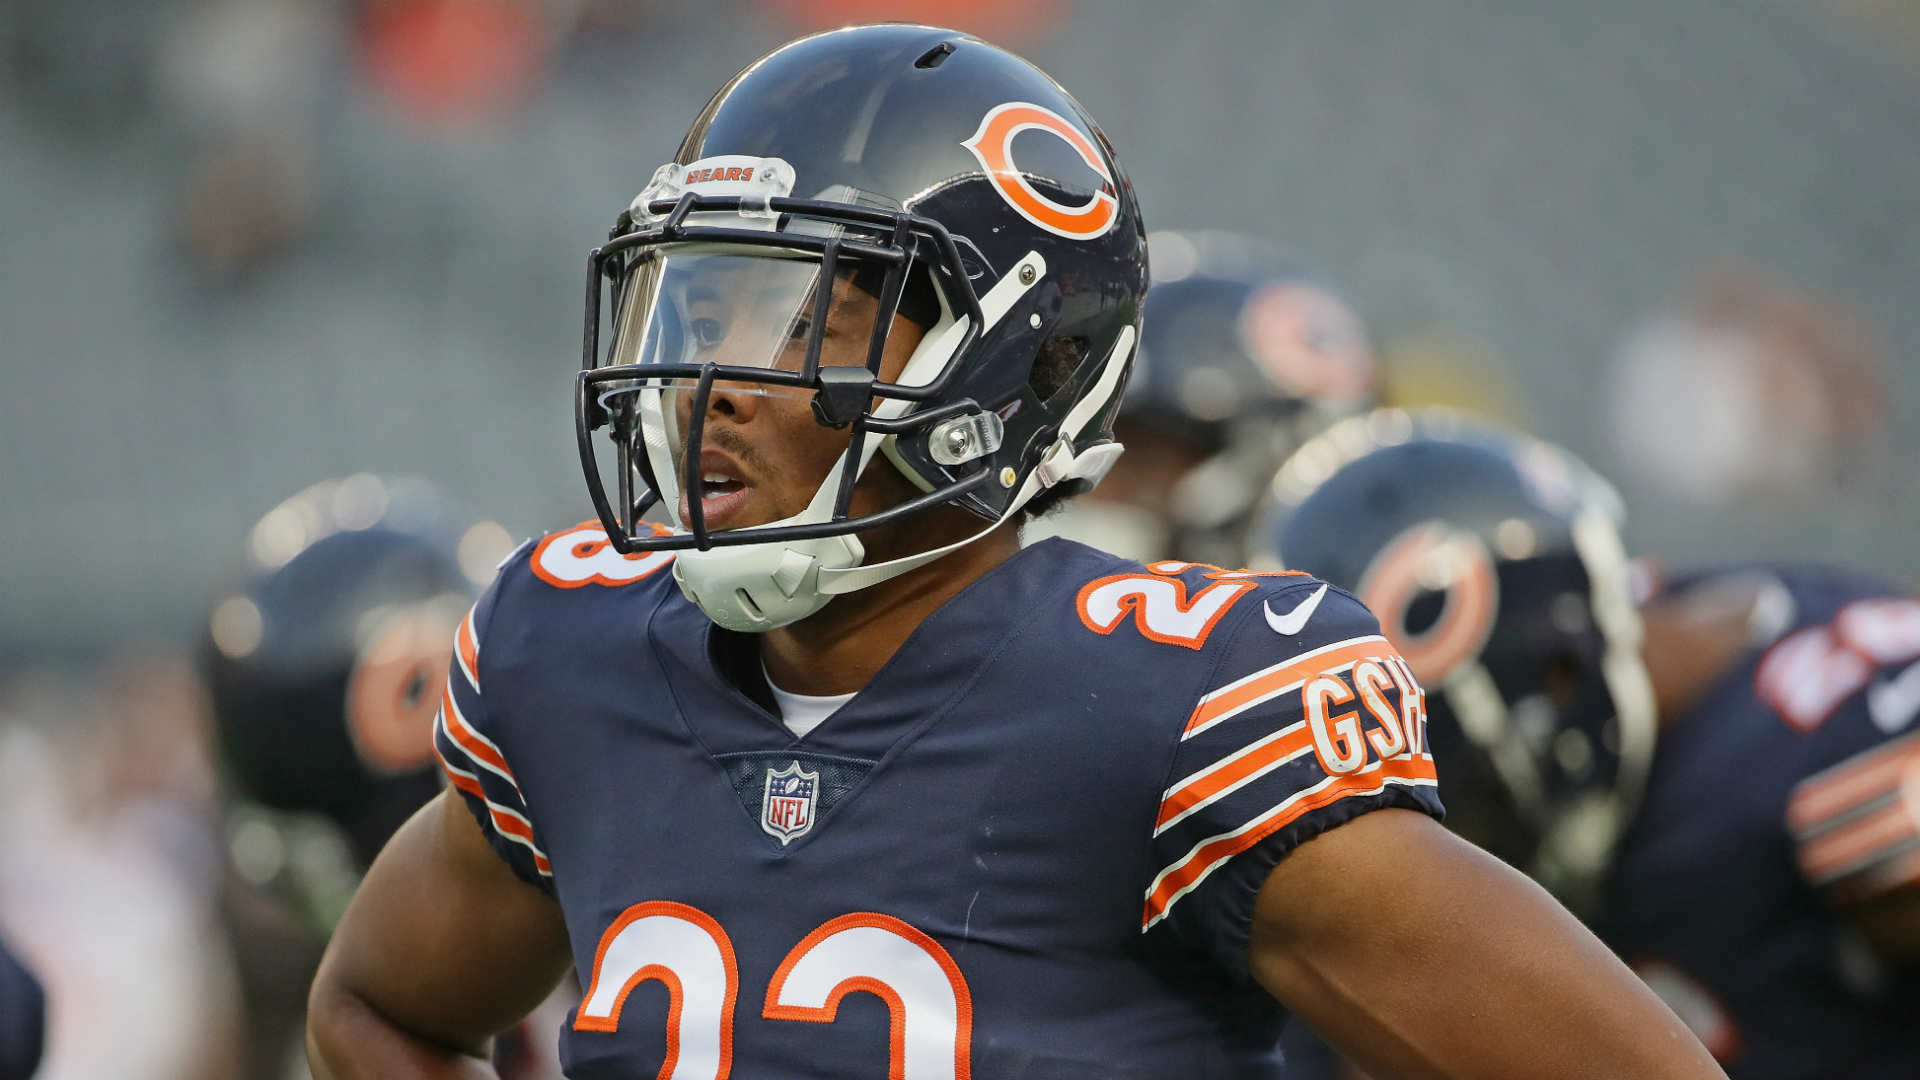 Bears match Packers' offer to keep CB Kyle Fuller